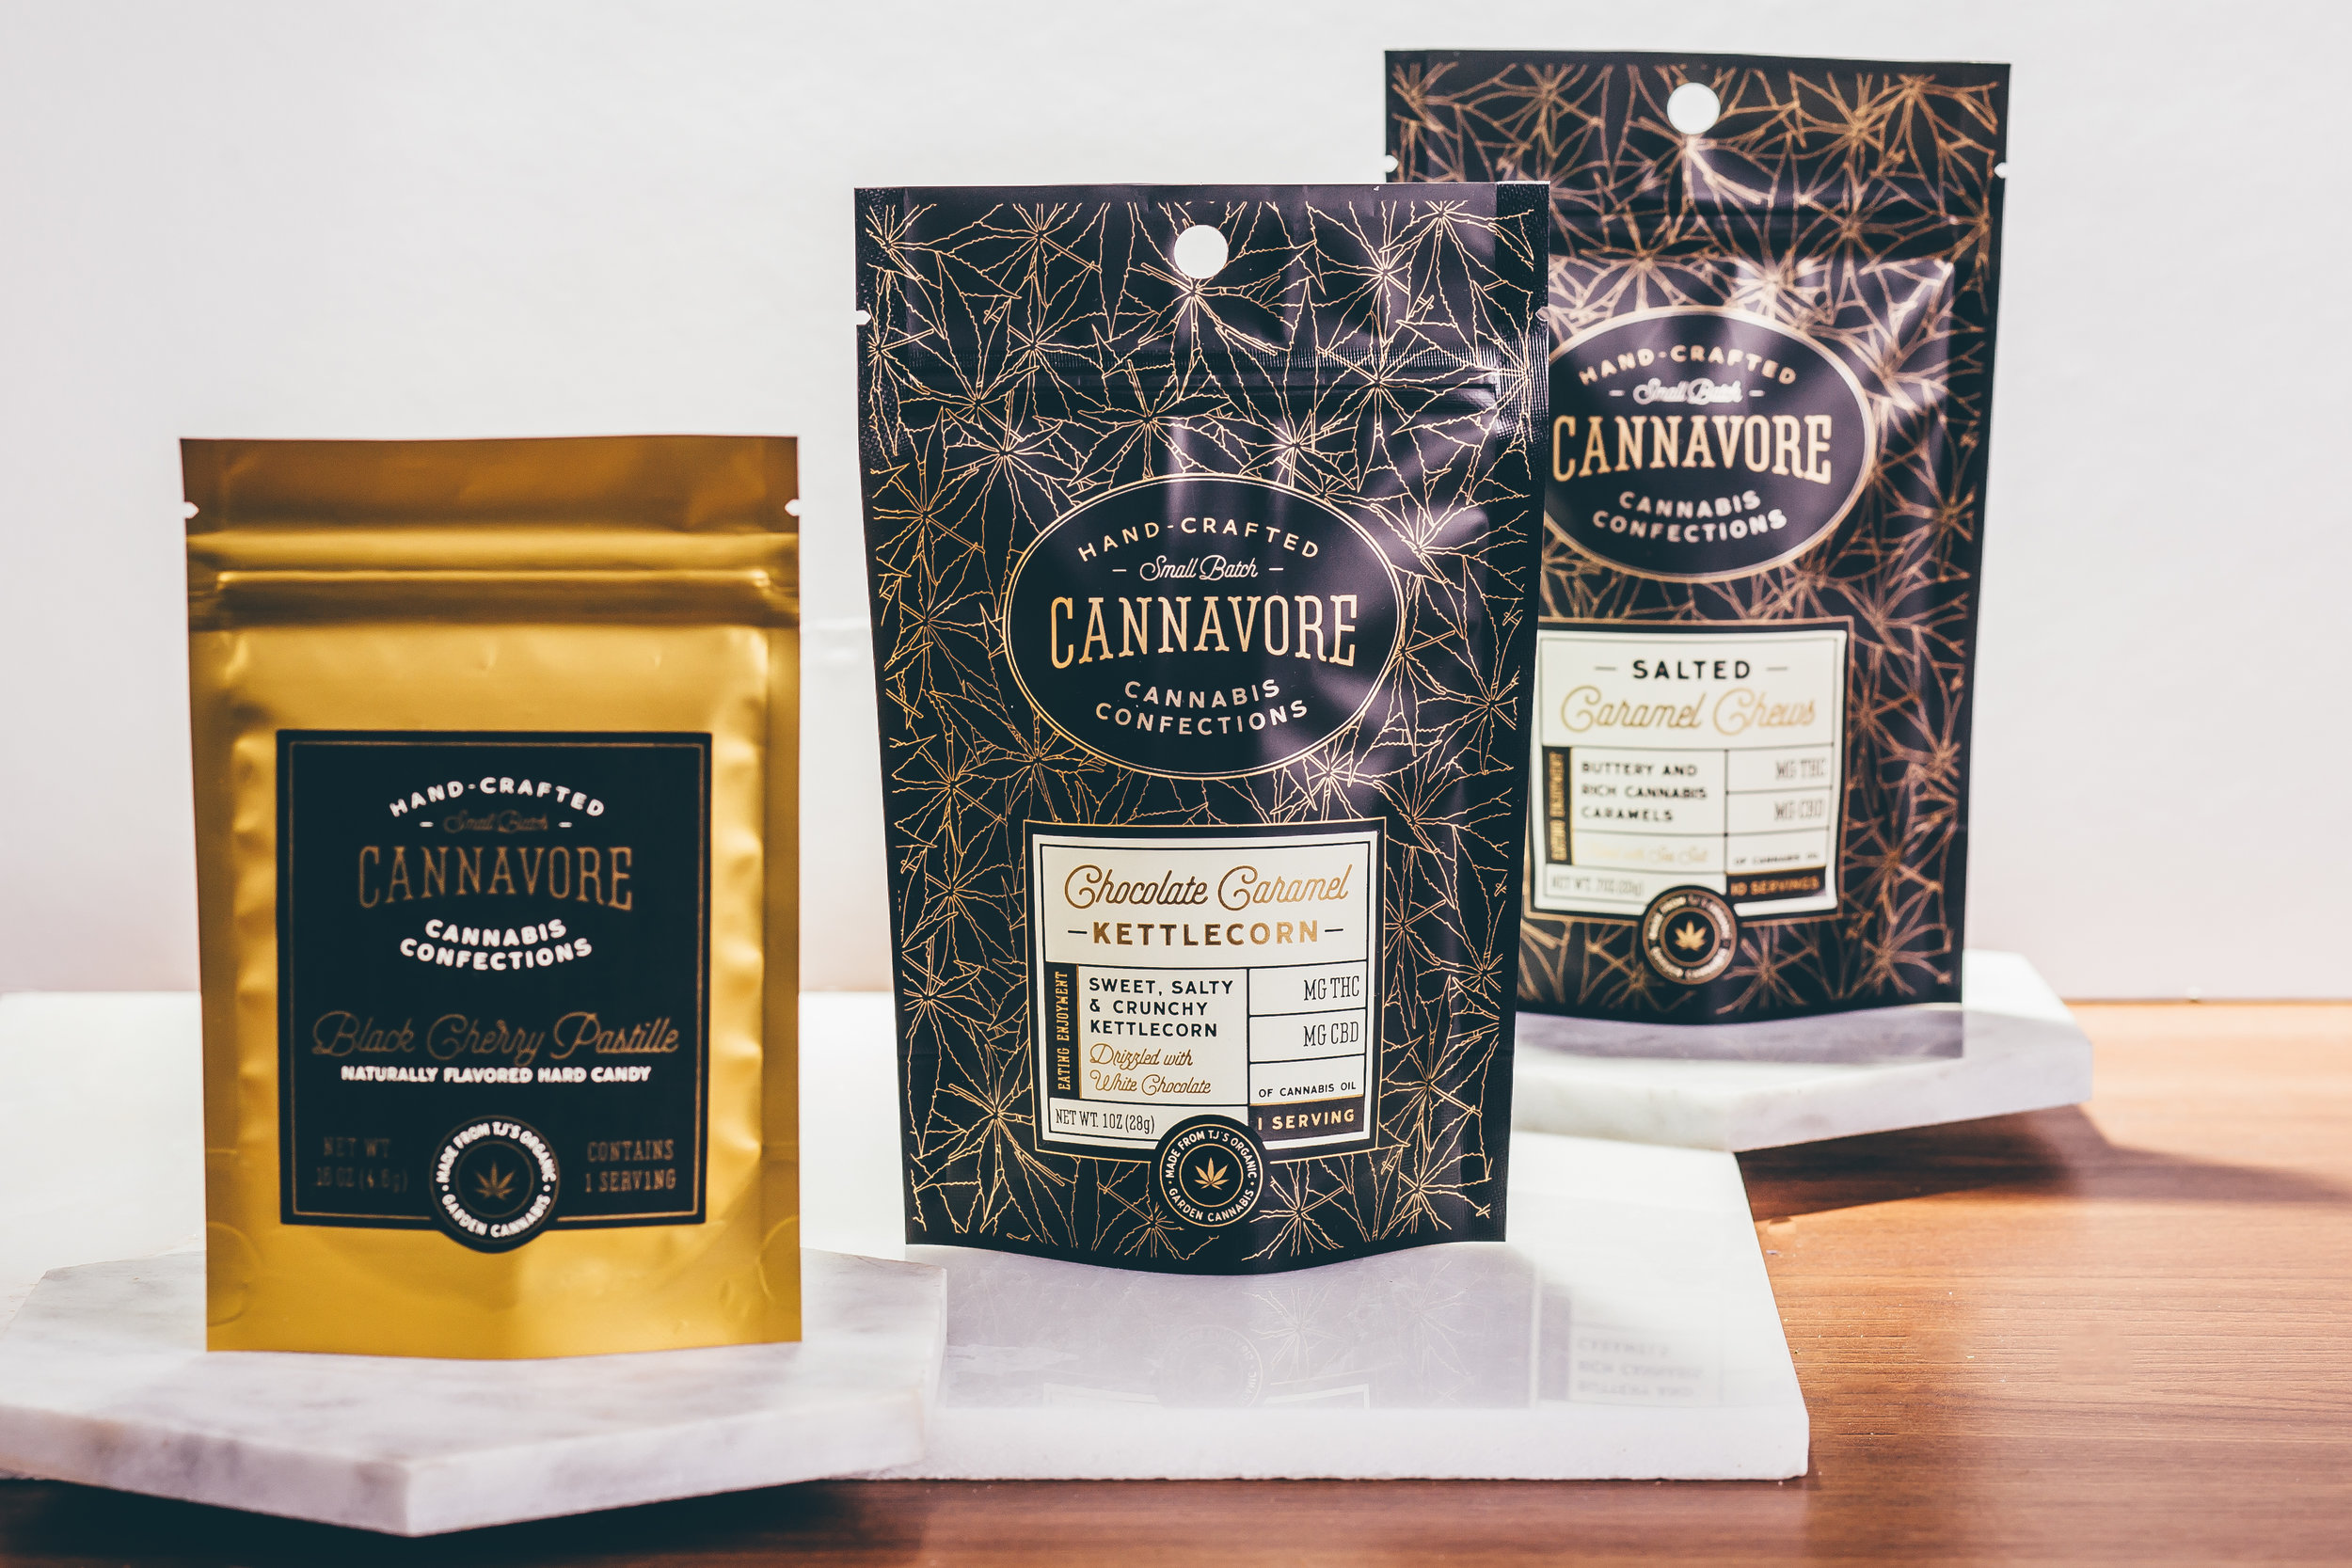 """Cannavore, Edibles Brand - Cannavore creates award-winning, artisan confections that are delicious and properly dosed. Cannavore chefs use small-batch, lab-tested, natural ingredients. Cannavore was recognized for the brand's identity and package design by High Times Magazine in their article """"21 Cannabis Brand To Watch.""""Visit Site"""